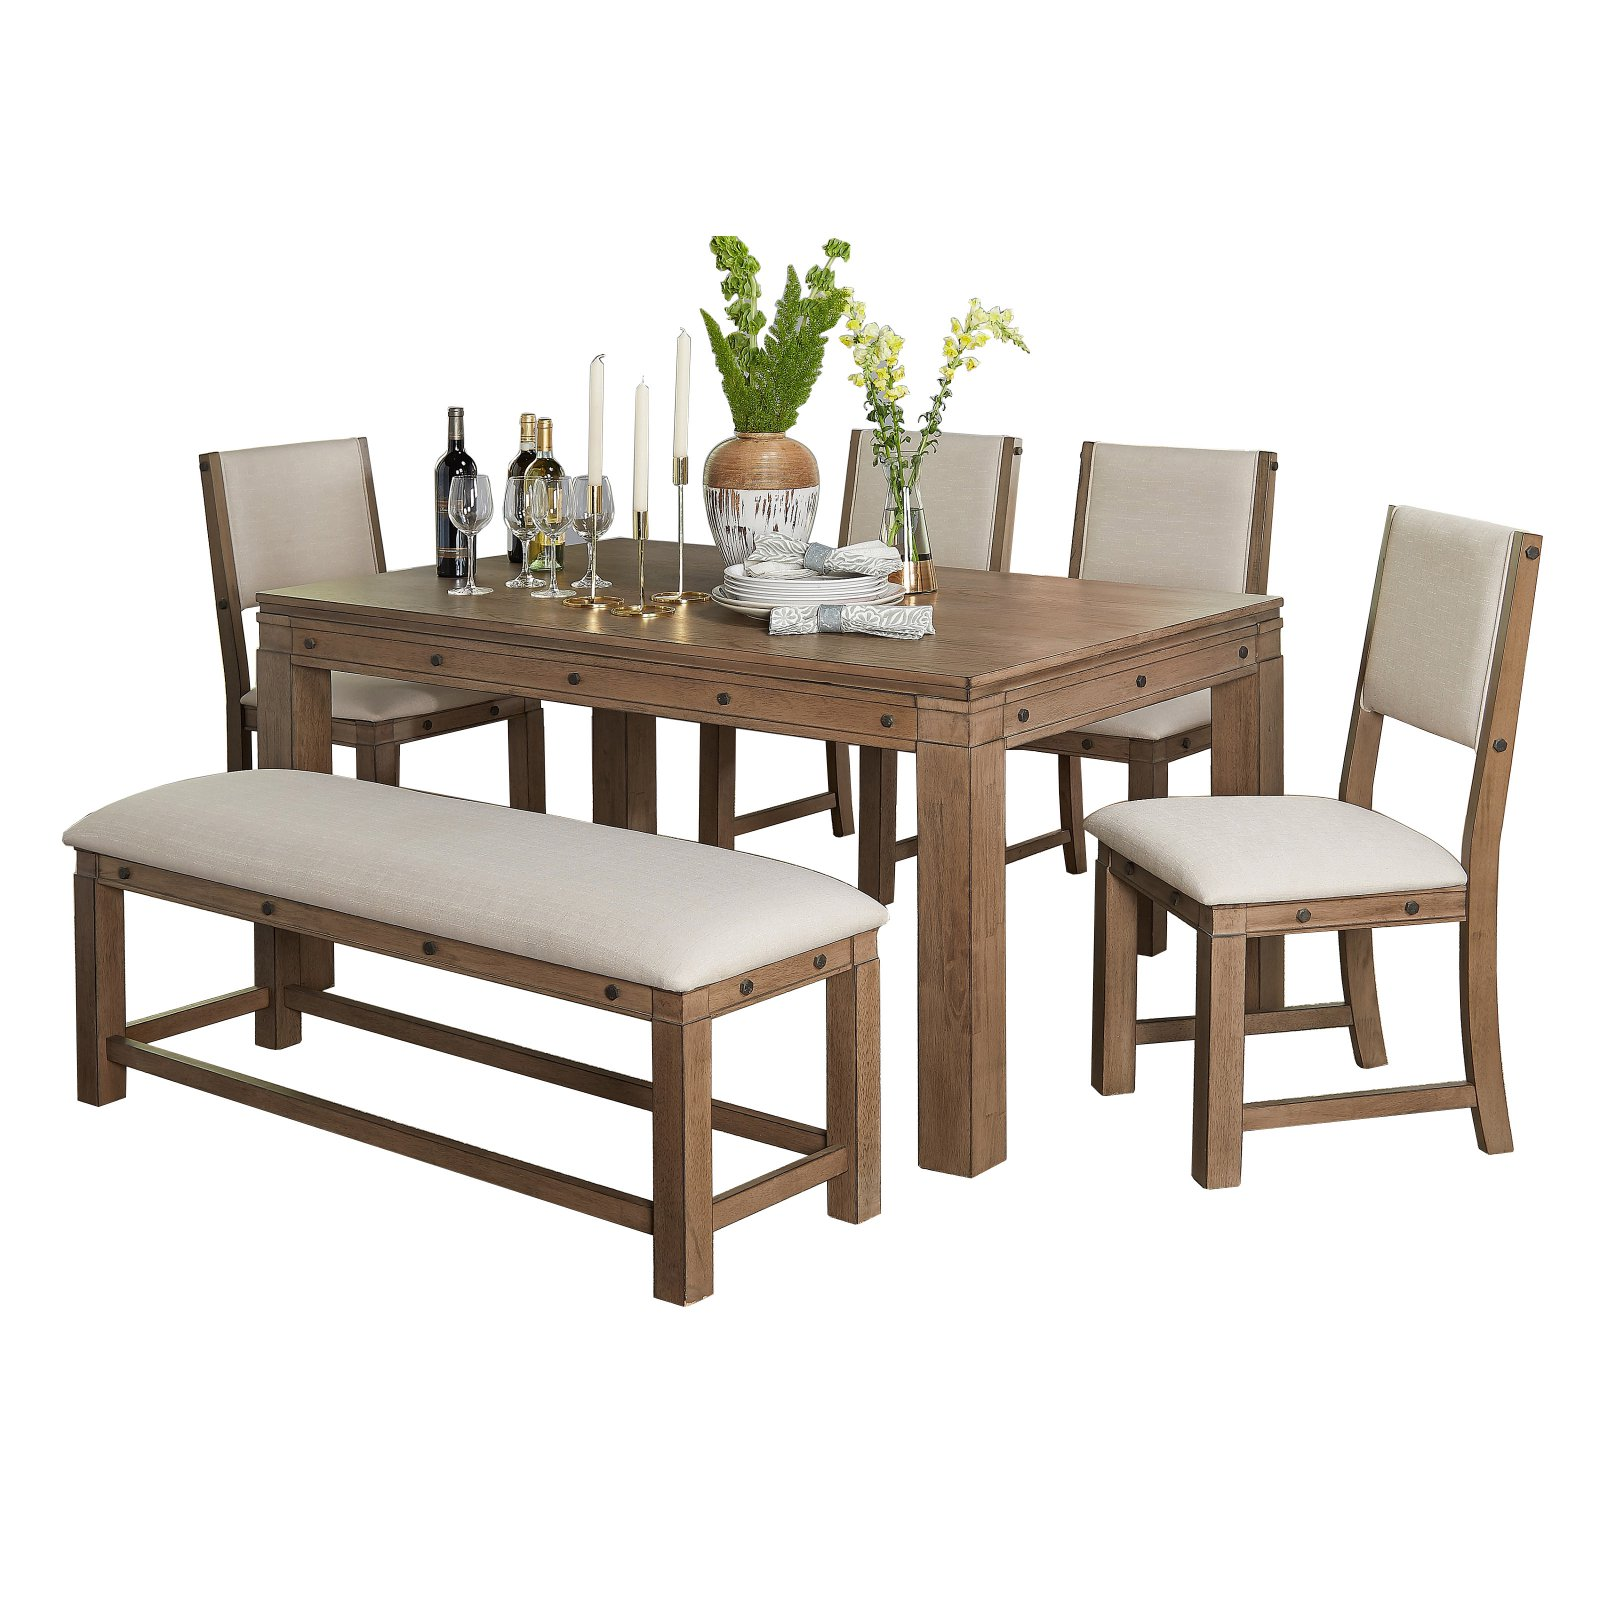 Target Marketing Systems Kinley 6 Piece Dining Table Set